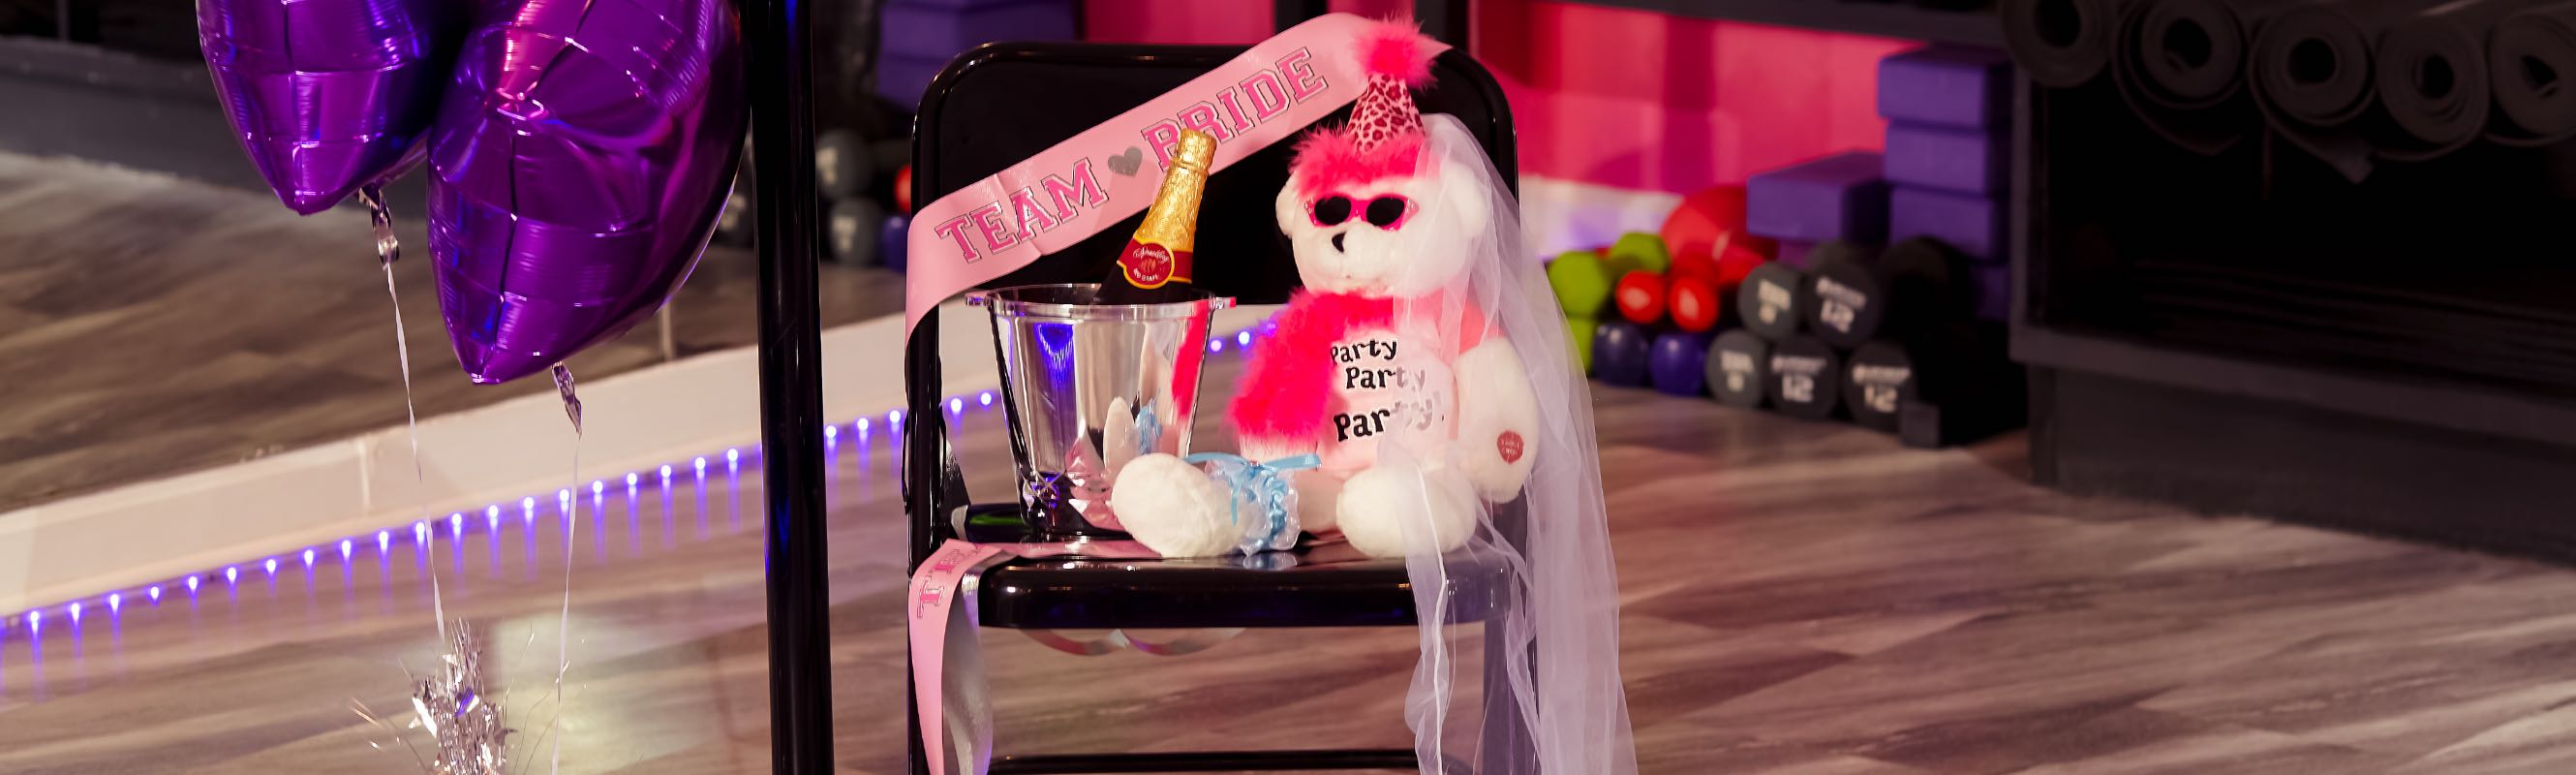 2019-1214-Twisted-Fitness-Party-Bear-Bridal-1777-2600×800-COMPRESSED